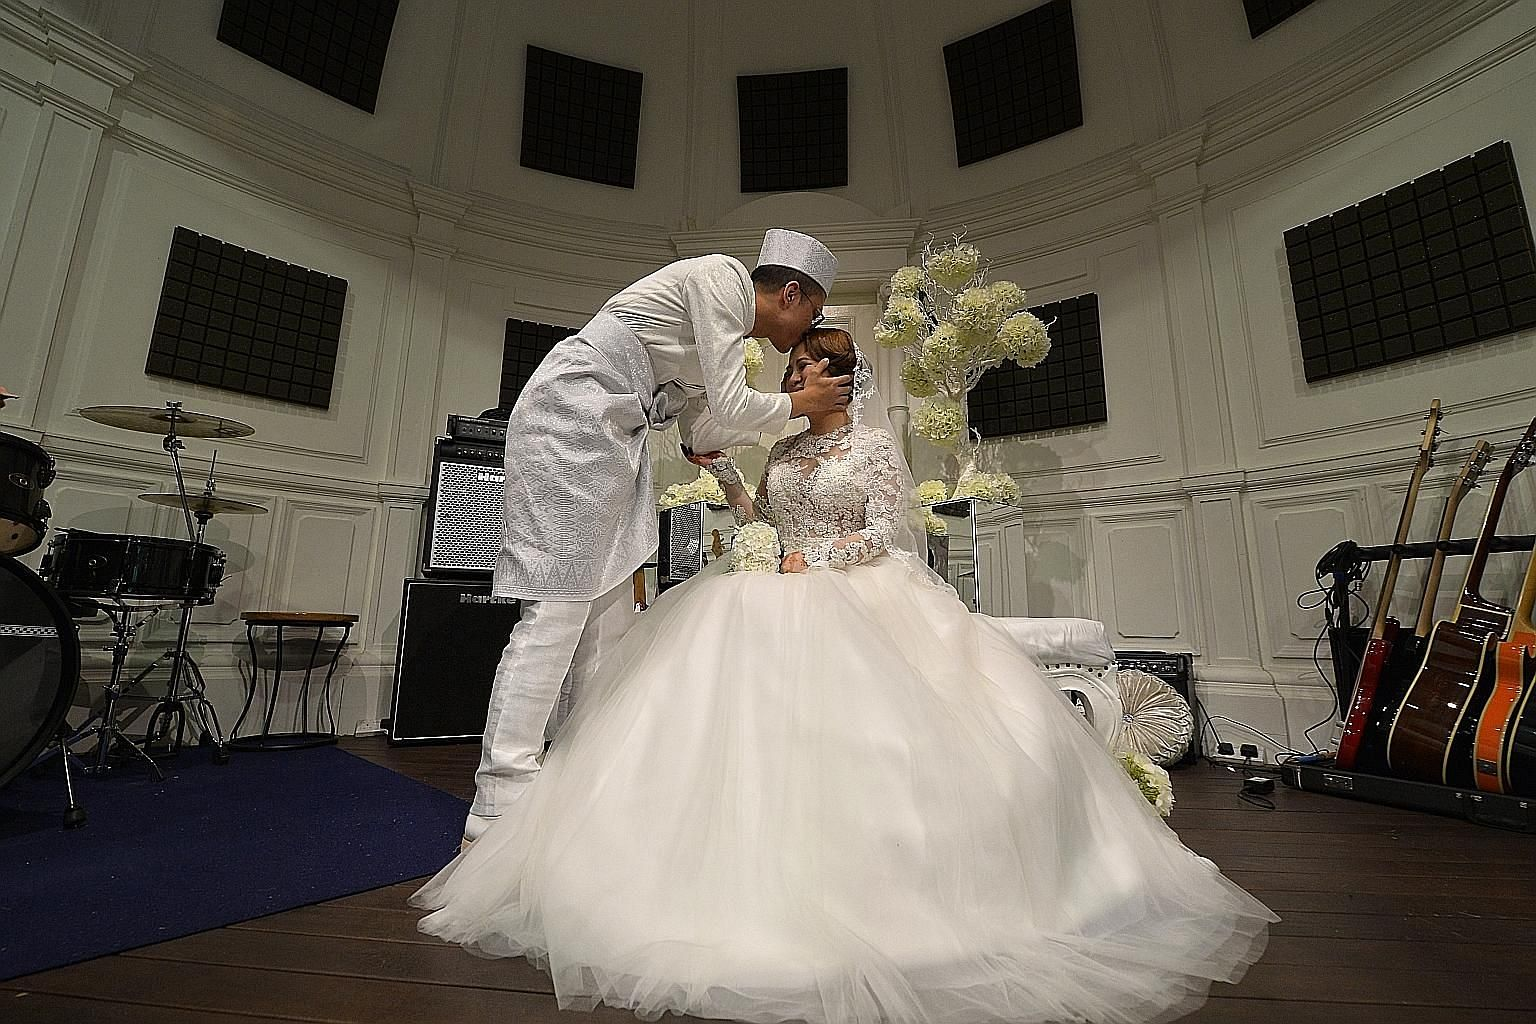 The third winner of Singapore Idol, Sezairi, solemnised his marriage to girlfriend Syaza at a closed-door event for 150 guests at the Timbre Music Academy. The singer had proposed on the set of local historical movie 1965, in which he made his acting